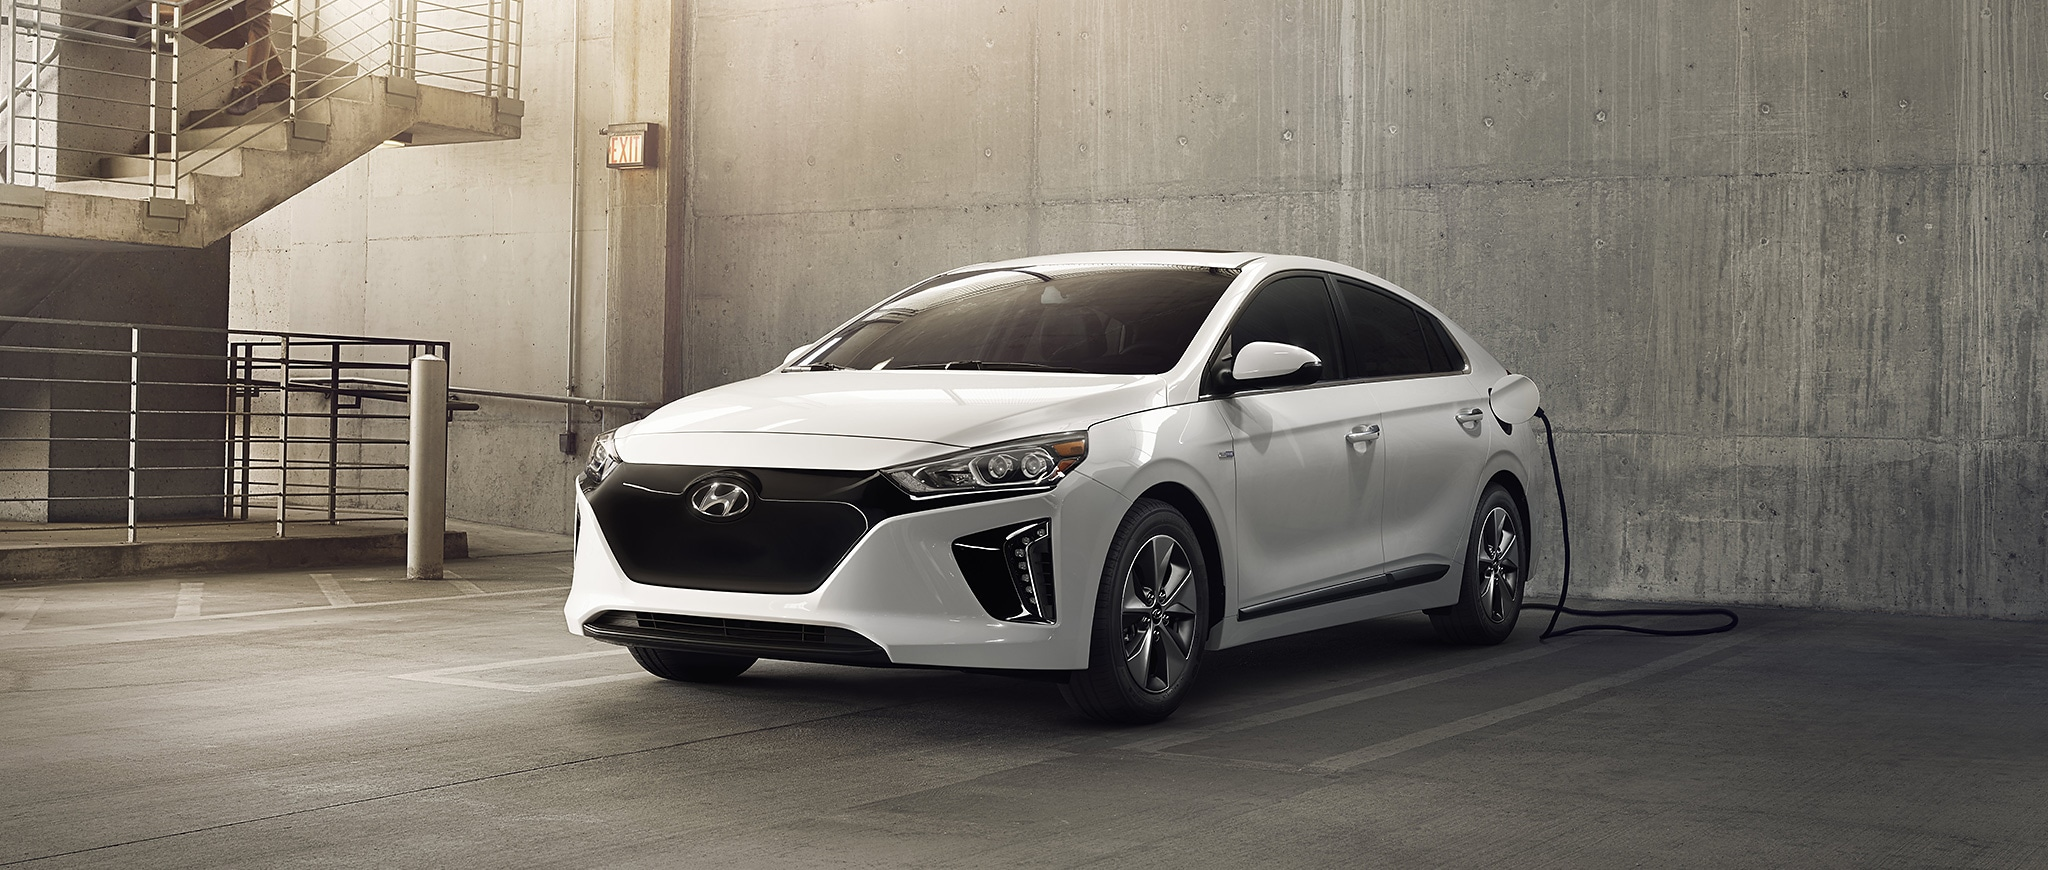 2017 Hyundai Ioniq Electric Long Island NY